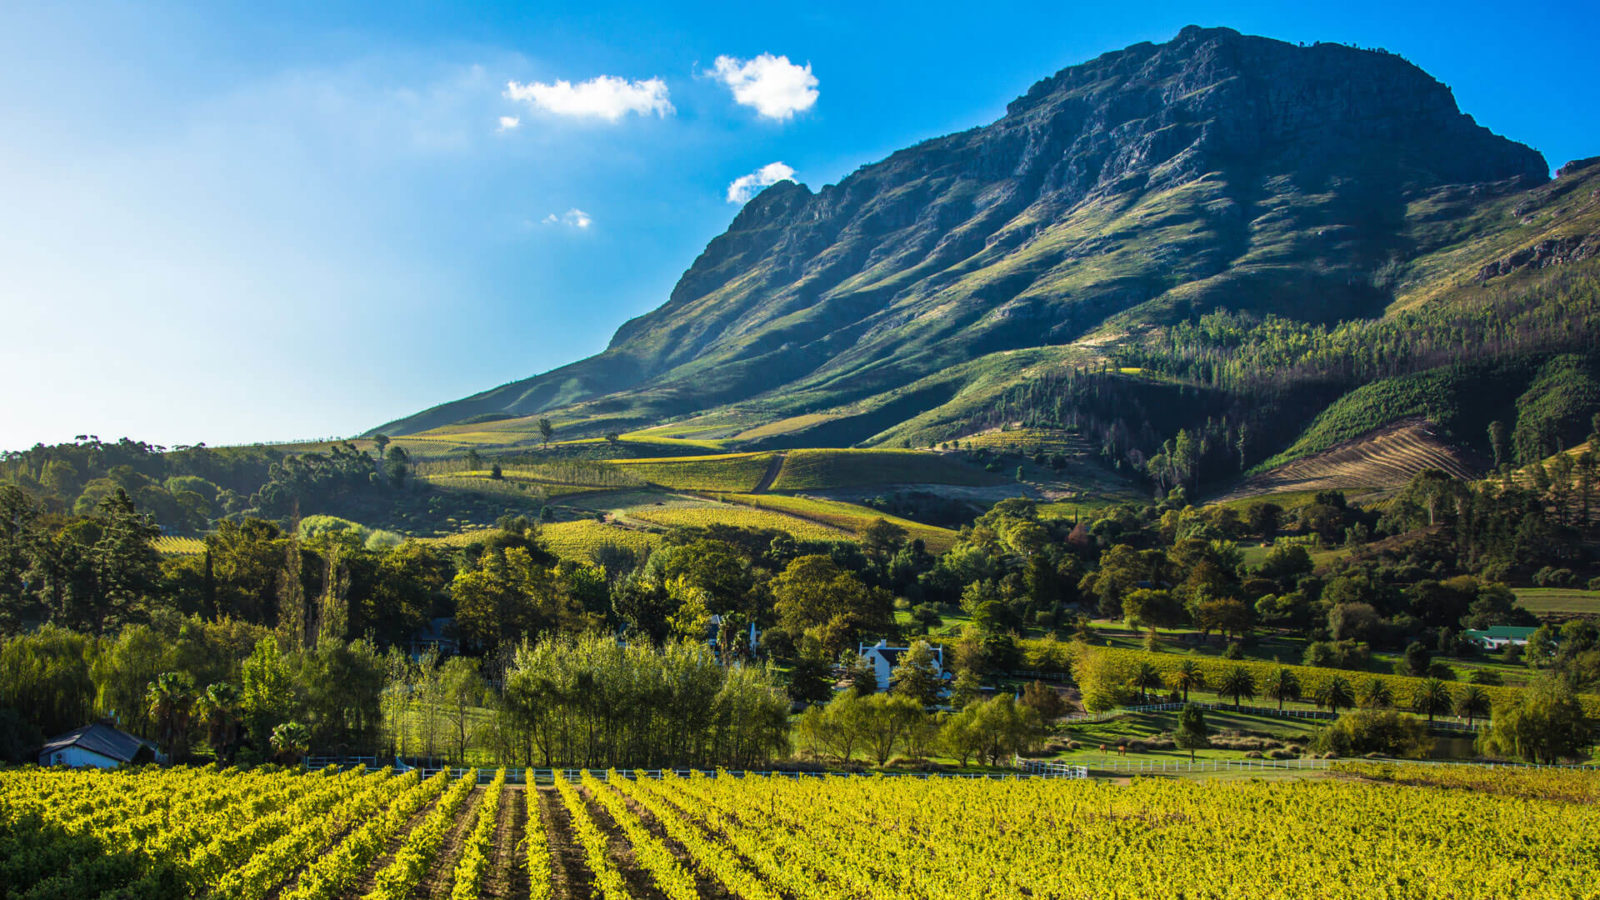 Things I Learnt About The South African Wine Industry During Lockdown photo